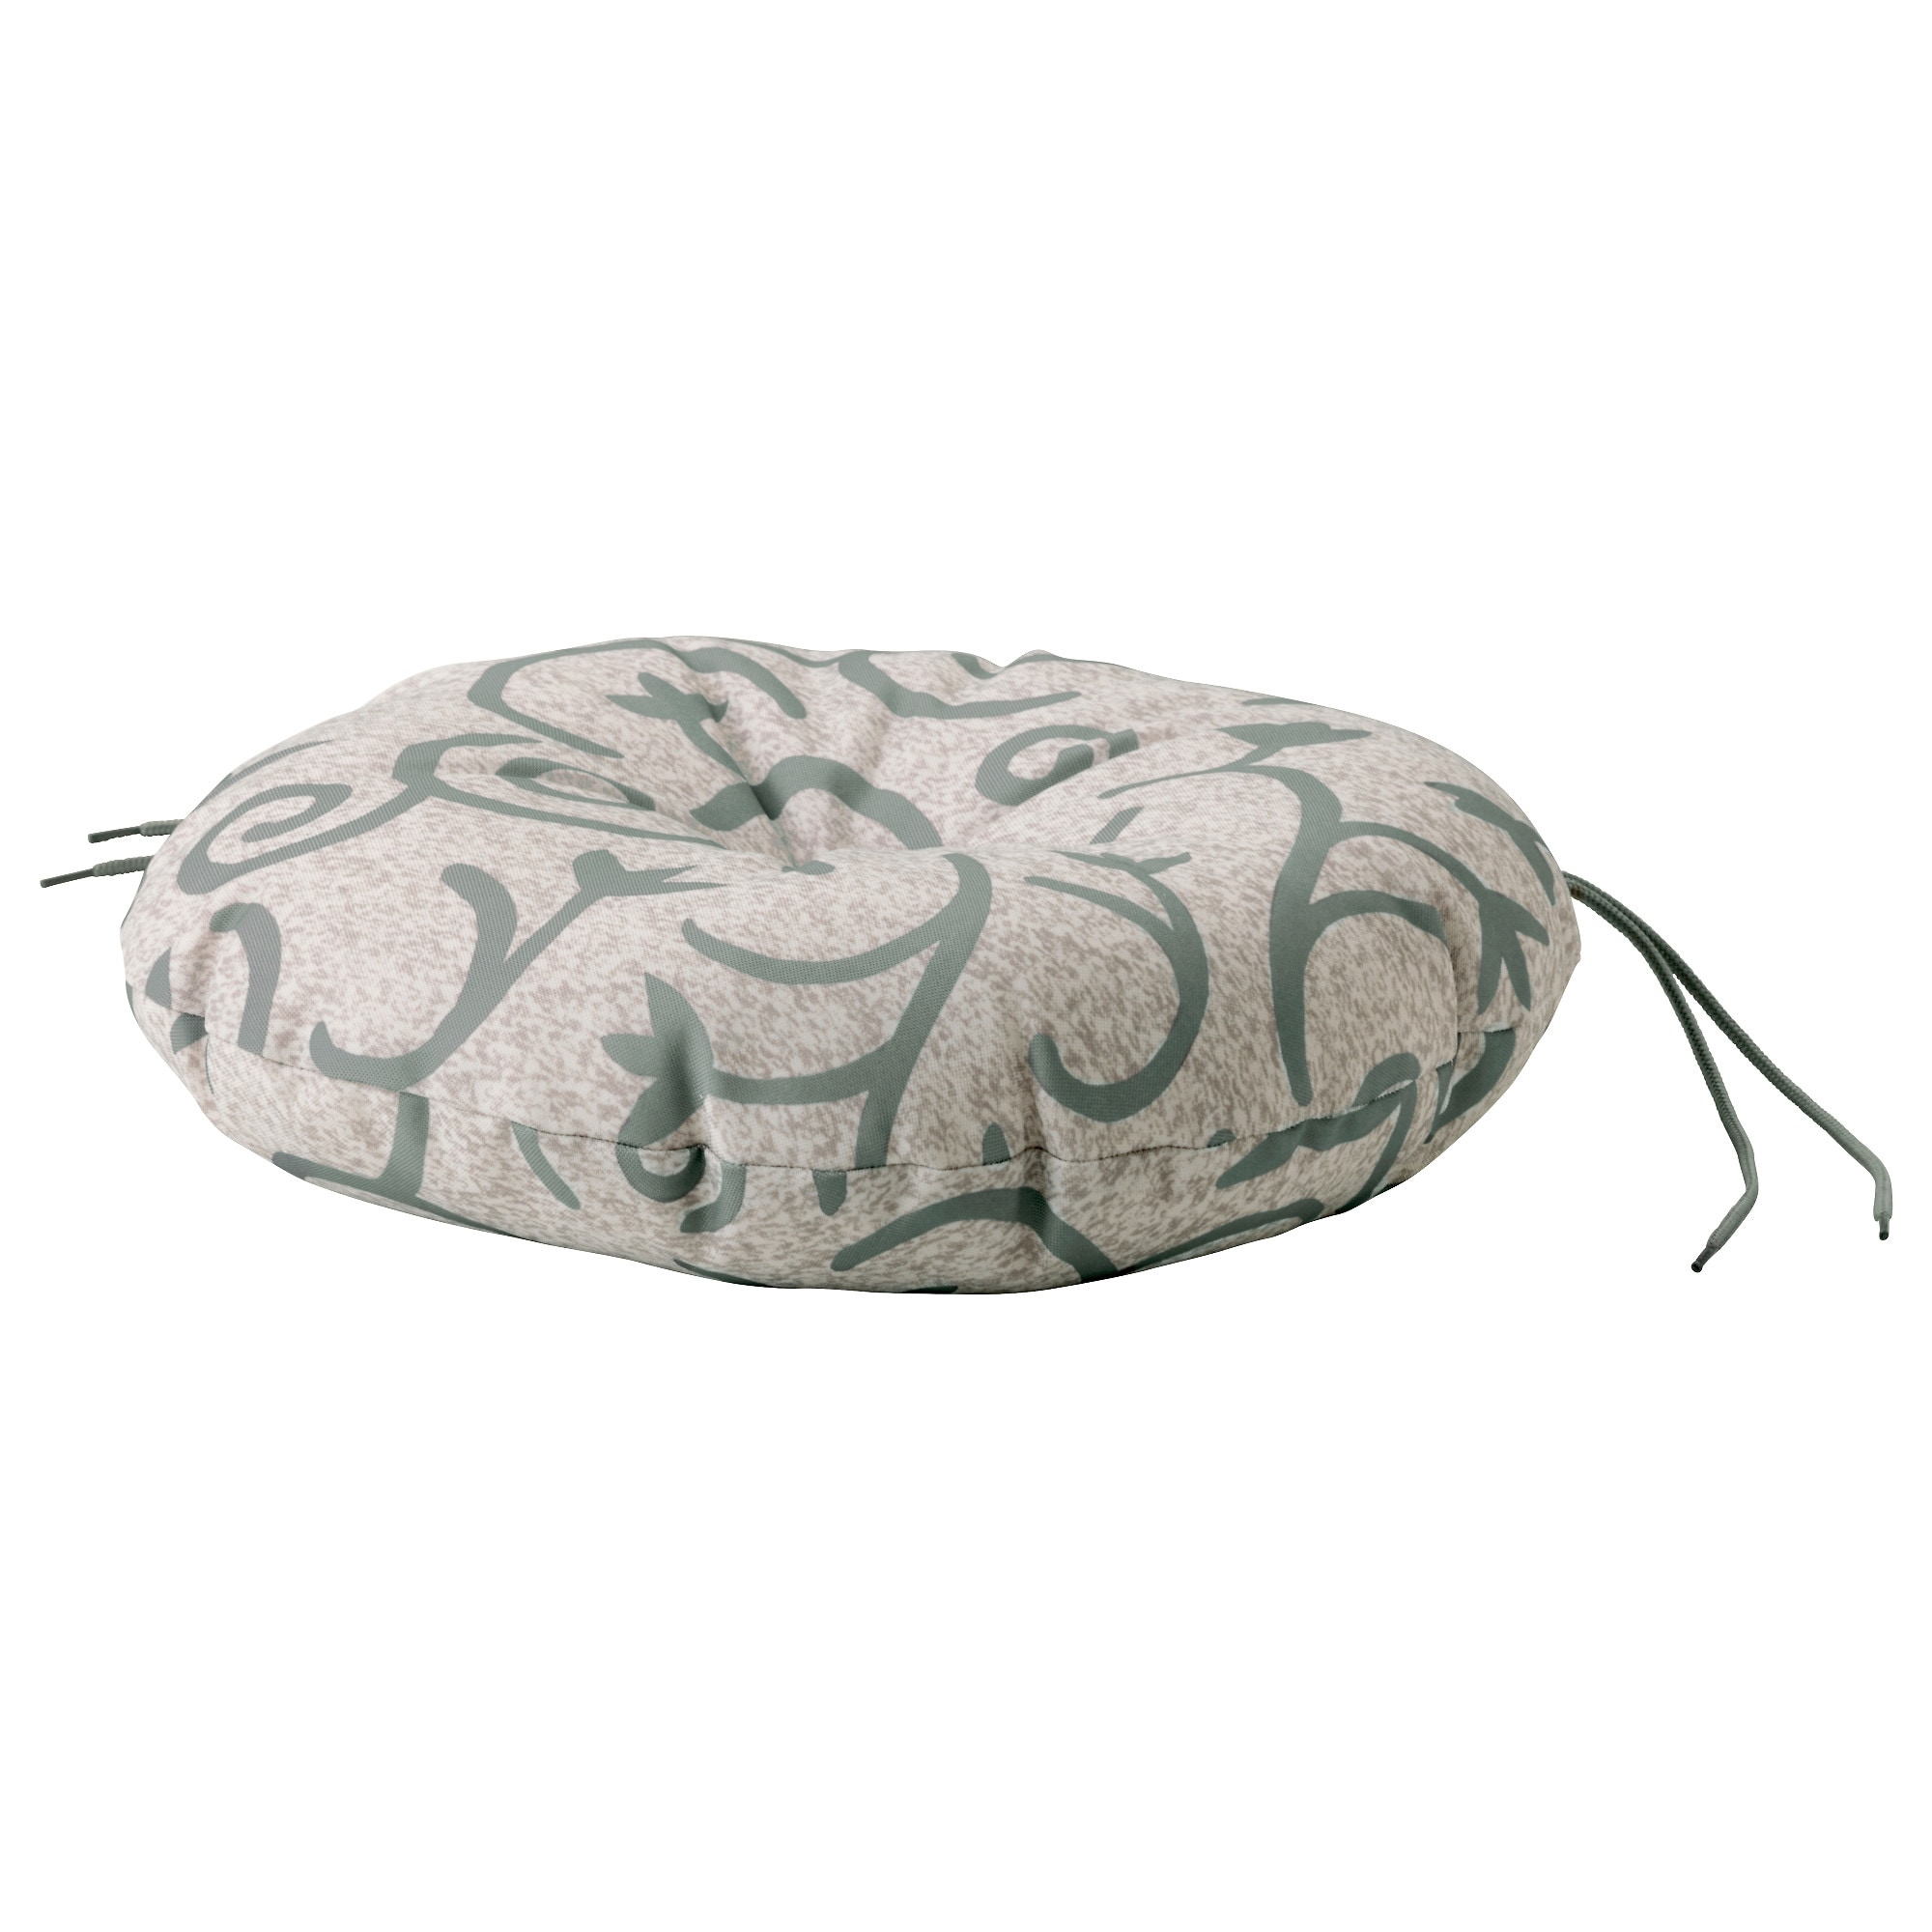 STEGON Chair Pad Outdoor